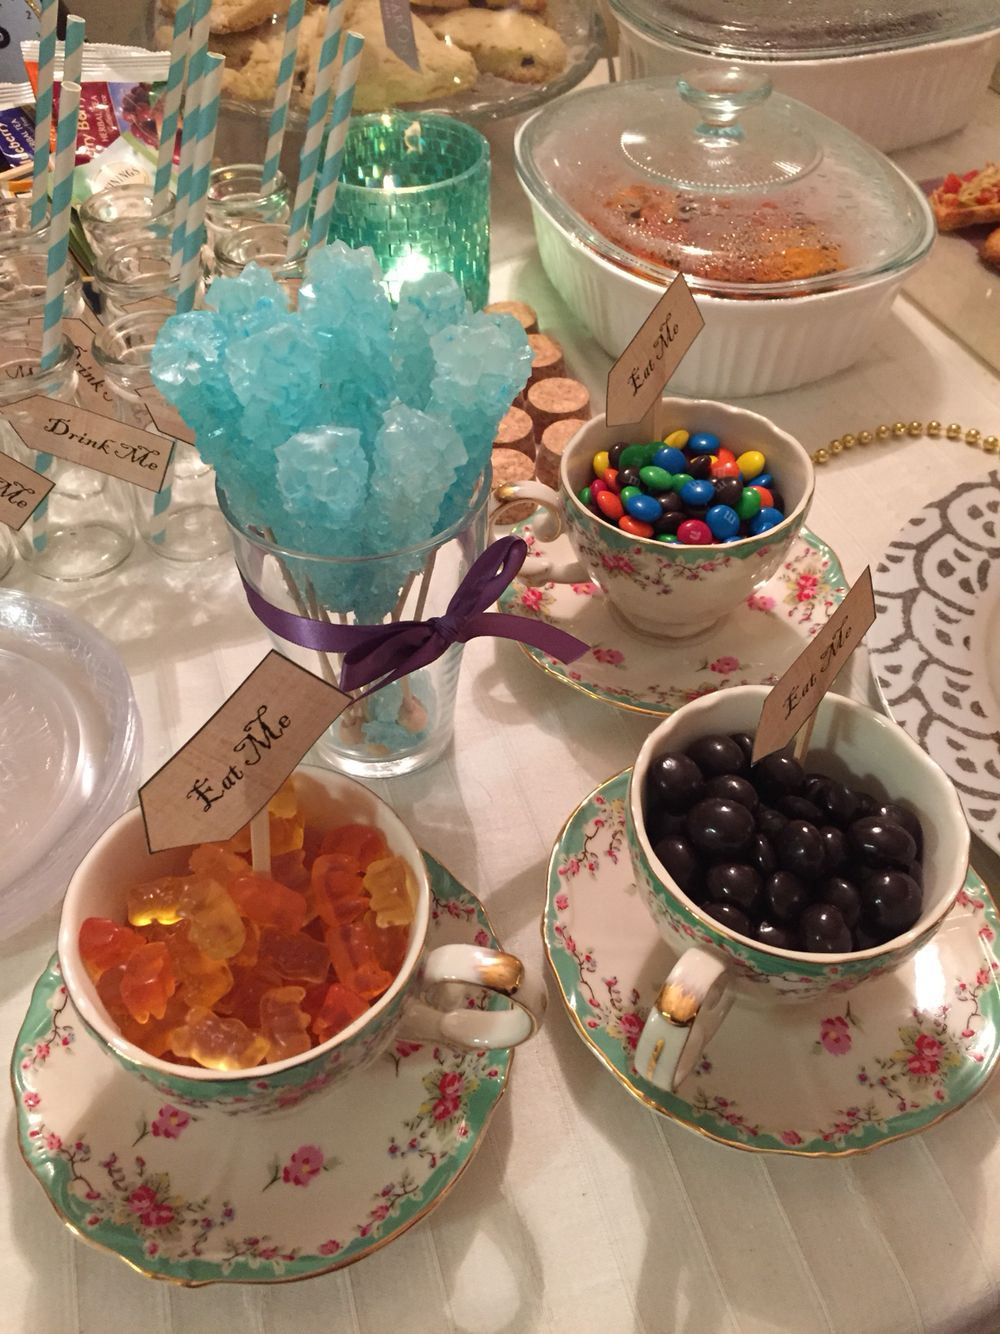 mad hatter teparty invitations pinterest%0A Mad Hatter u    s tea party inspired by Alice in Wonderland  candy in teacups